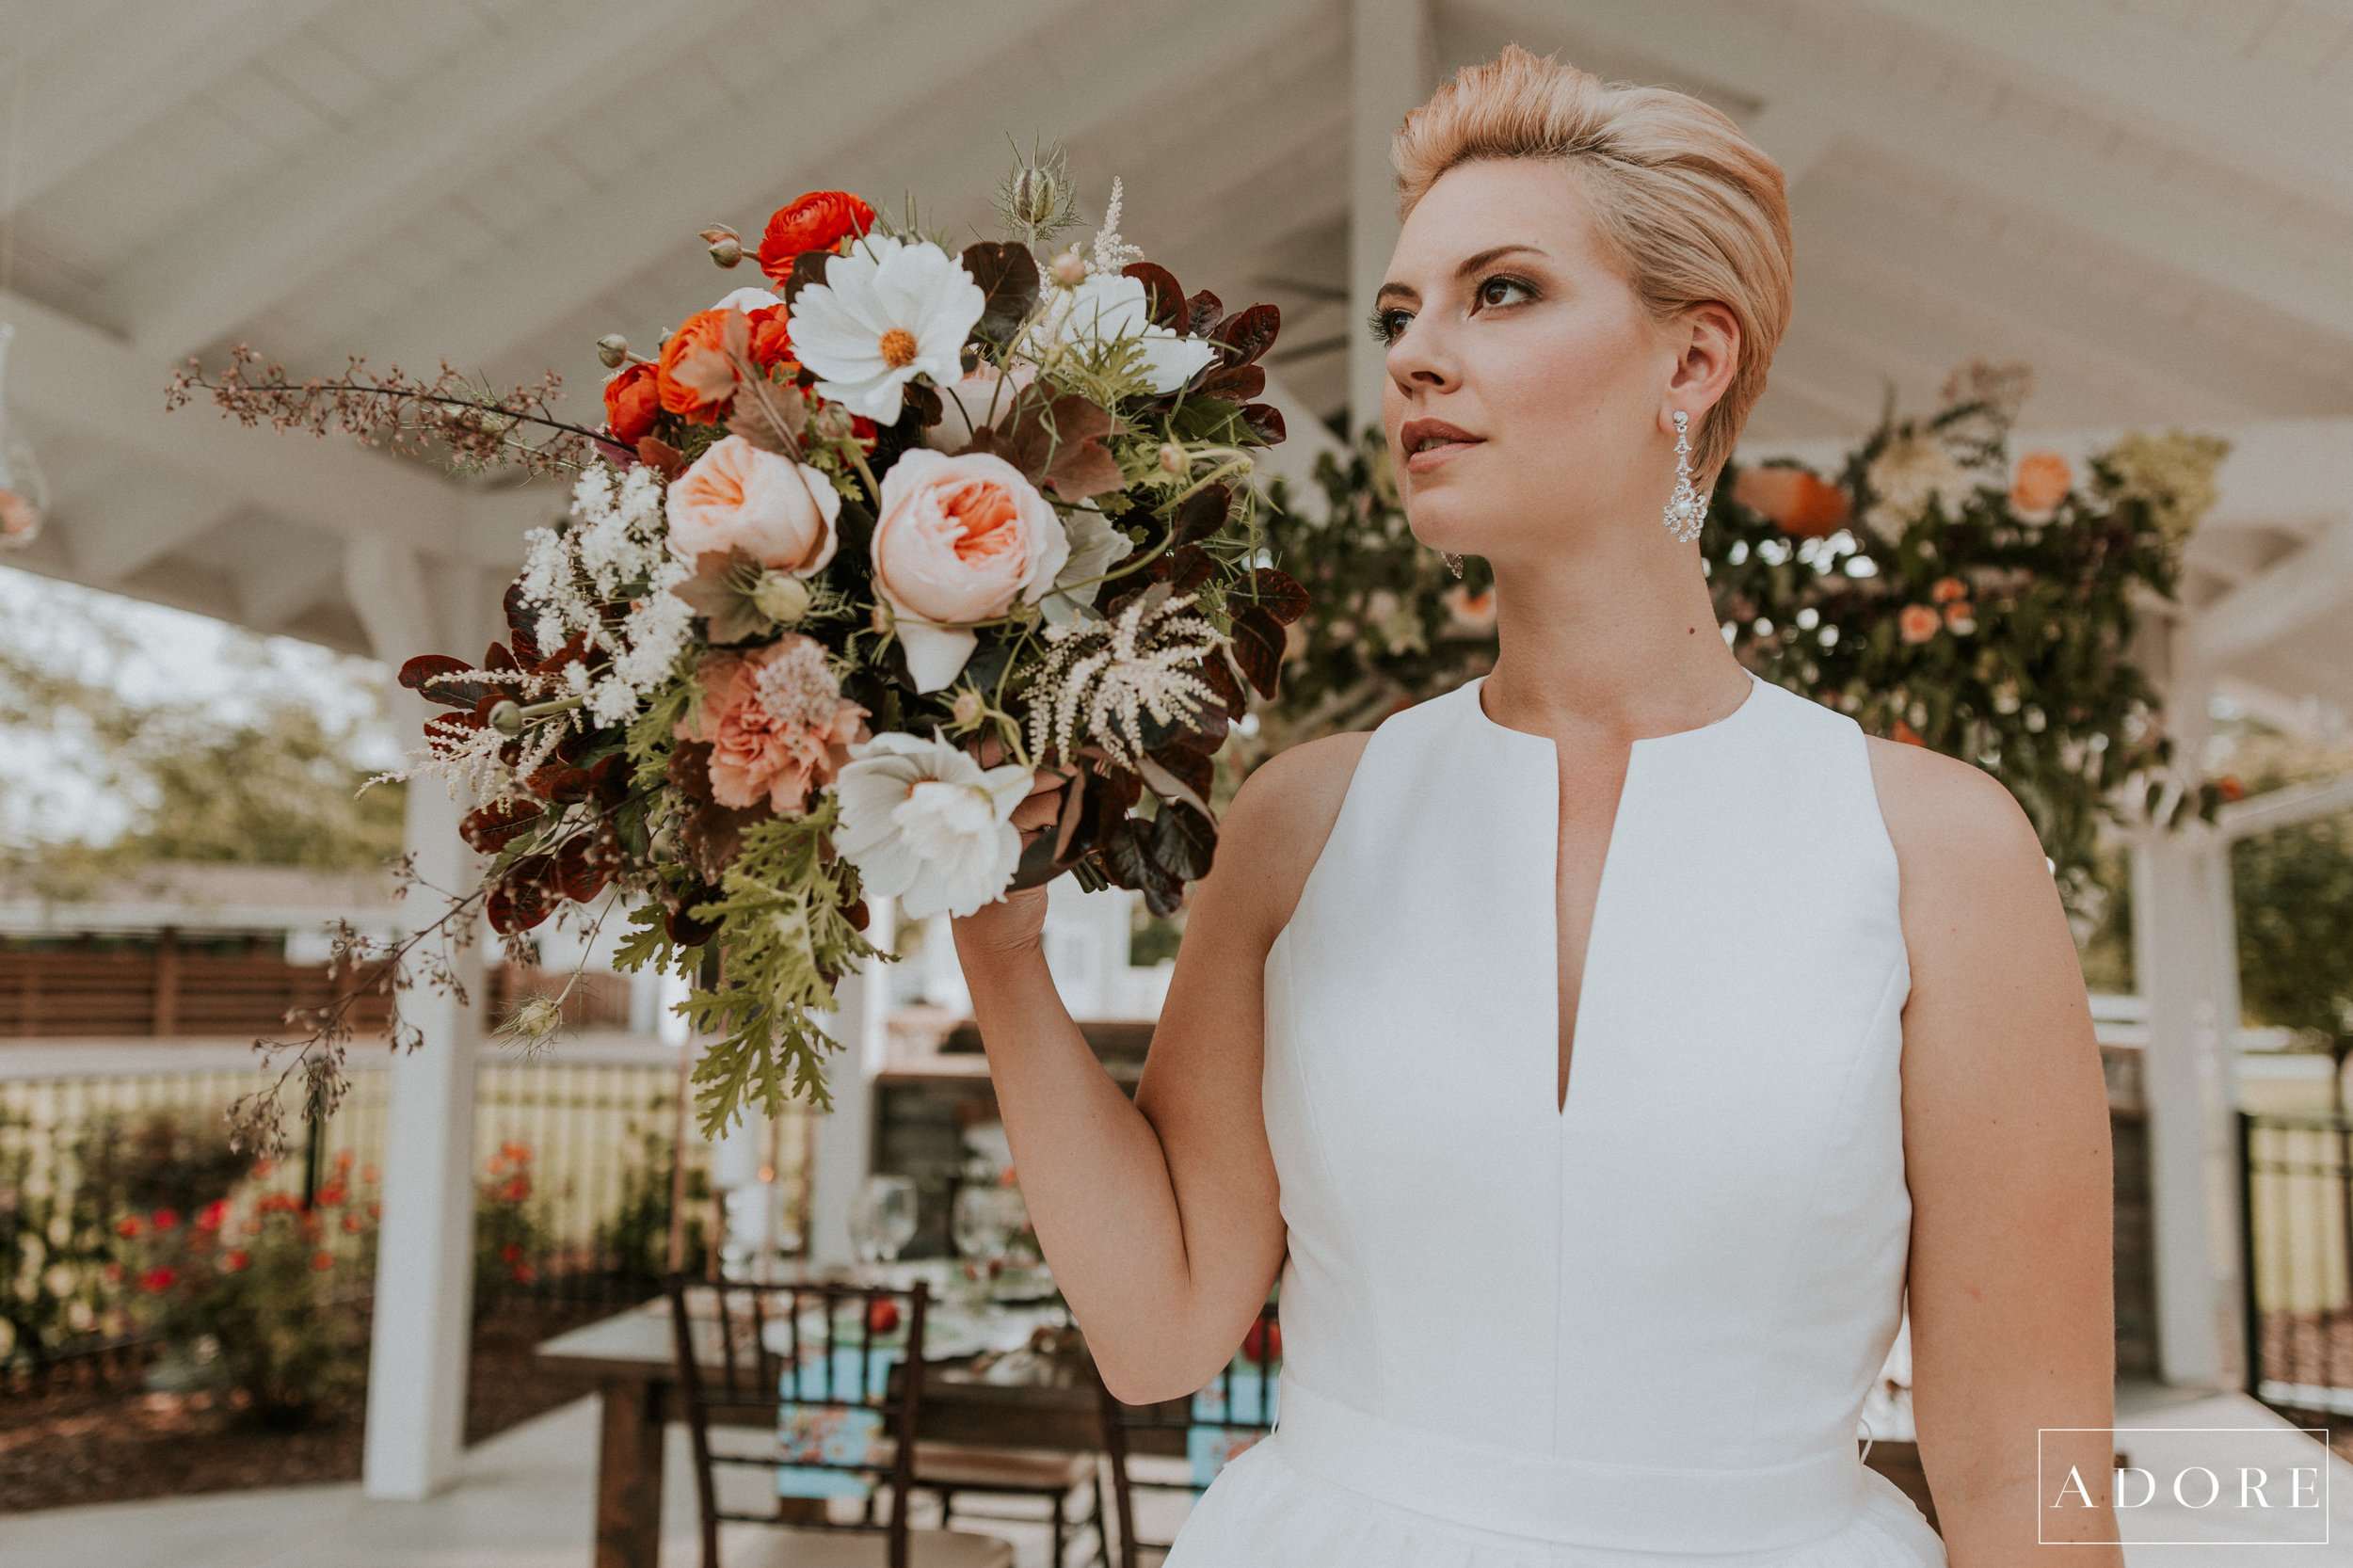 Professional Airbrush Makeup for Styled Wedding Shoot at Yoder Farm. Adore Wedding Photography. Hafner Florist. Belle Amour Bridal. Toledo Makeup Artist. 1.jpg